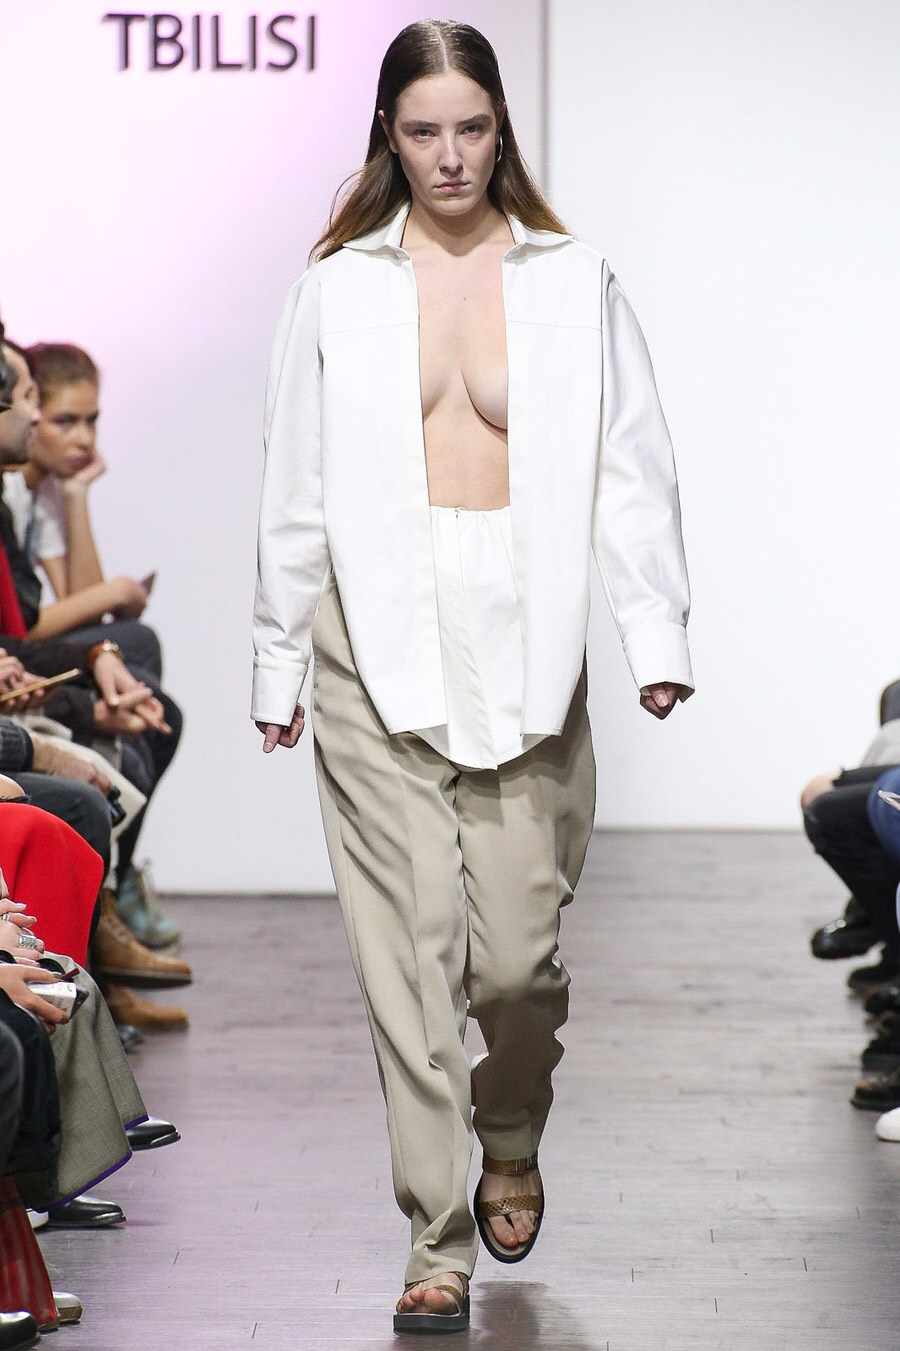 TBILISI: SITUATONIST SS17